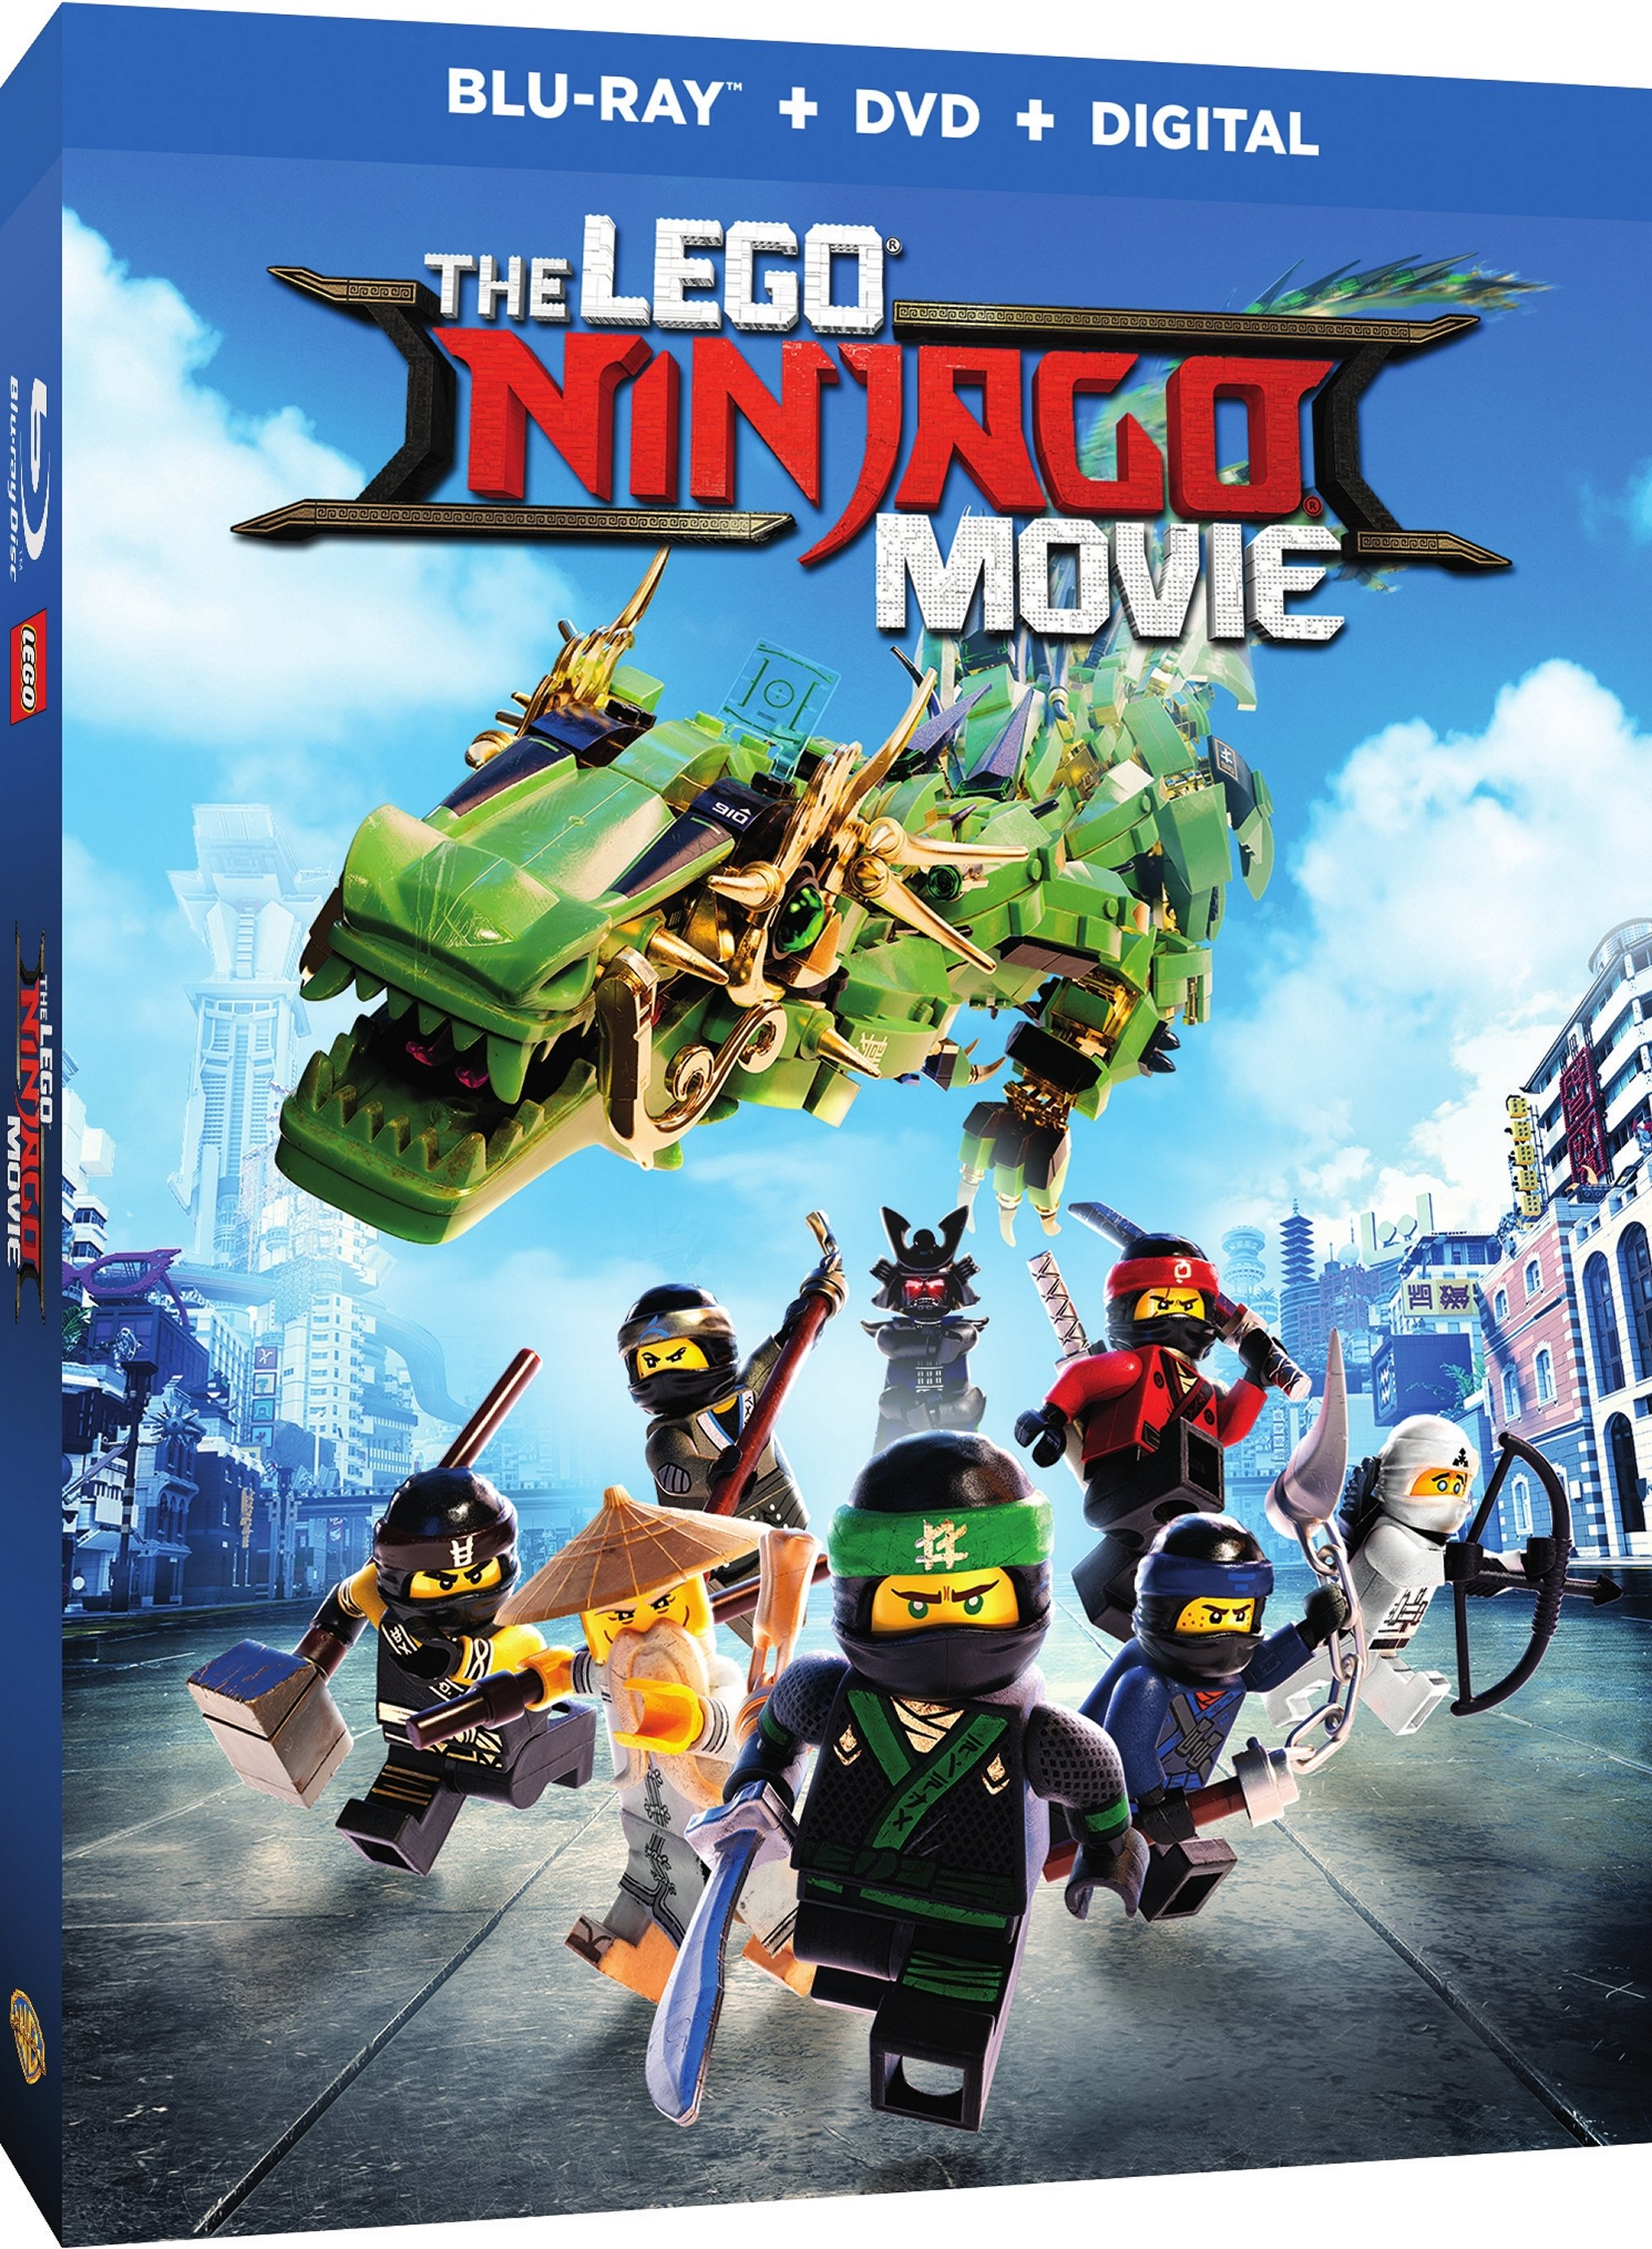 The Lego Ninjago Movie Blu-ray Review